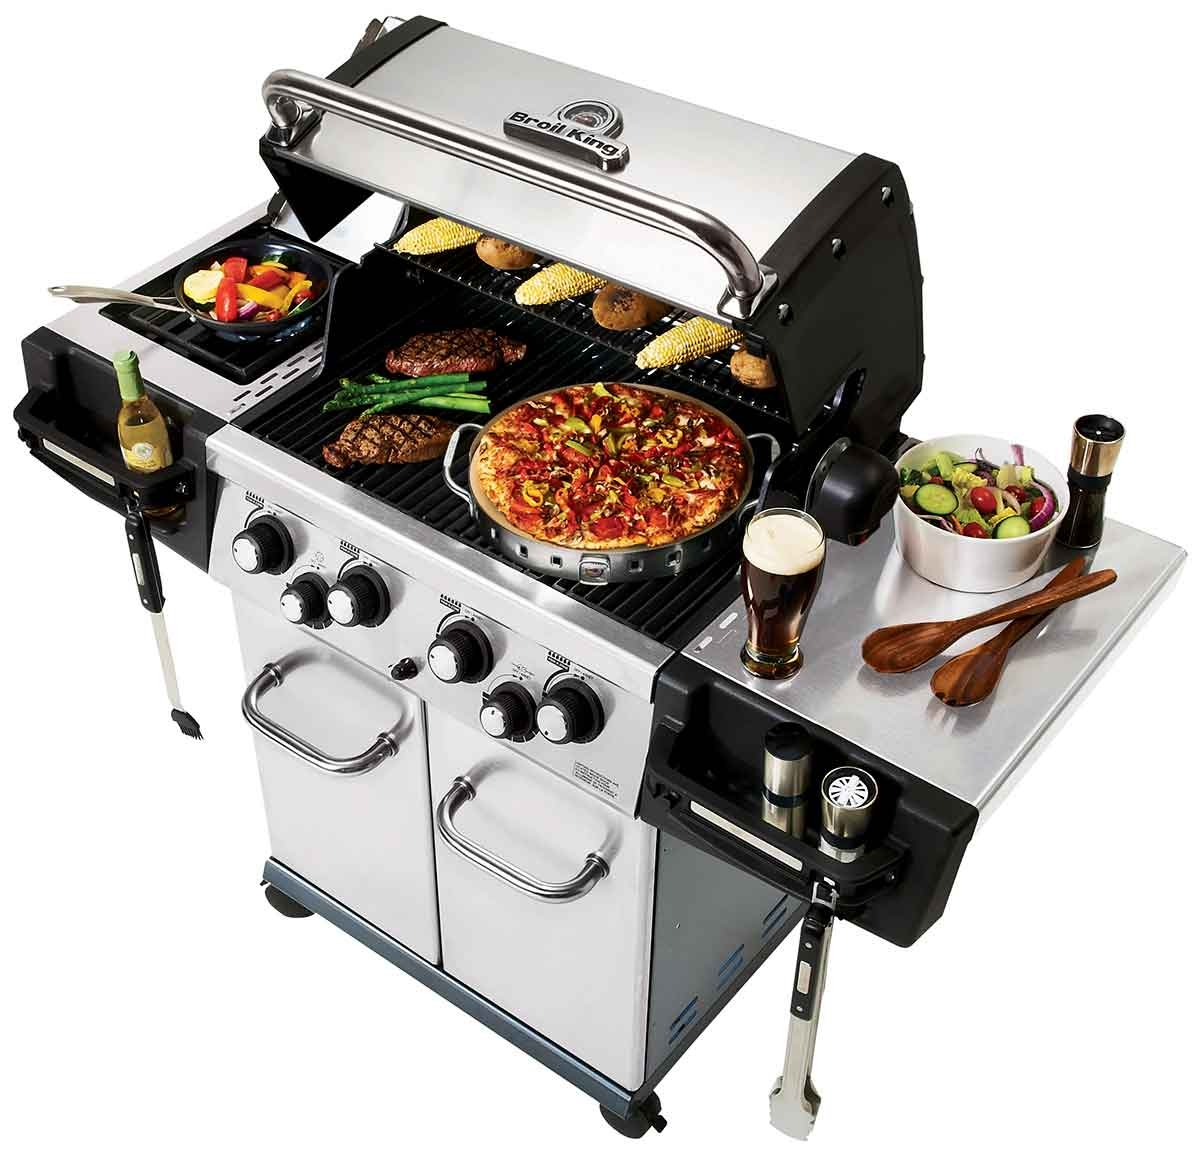 Broil-King-barbecue-3_308_248.jpg